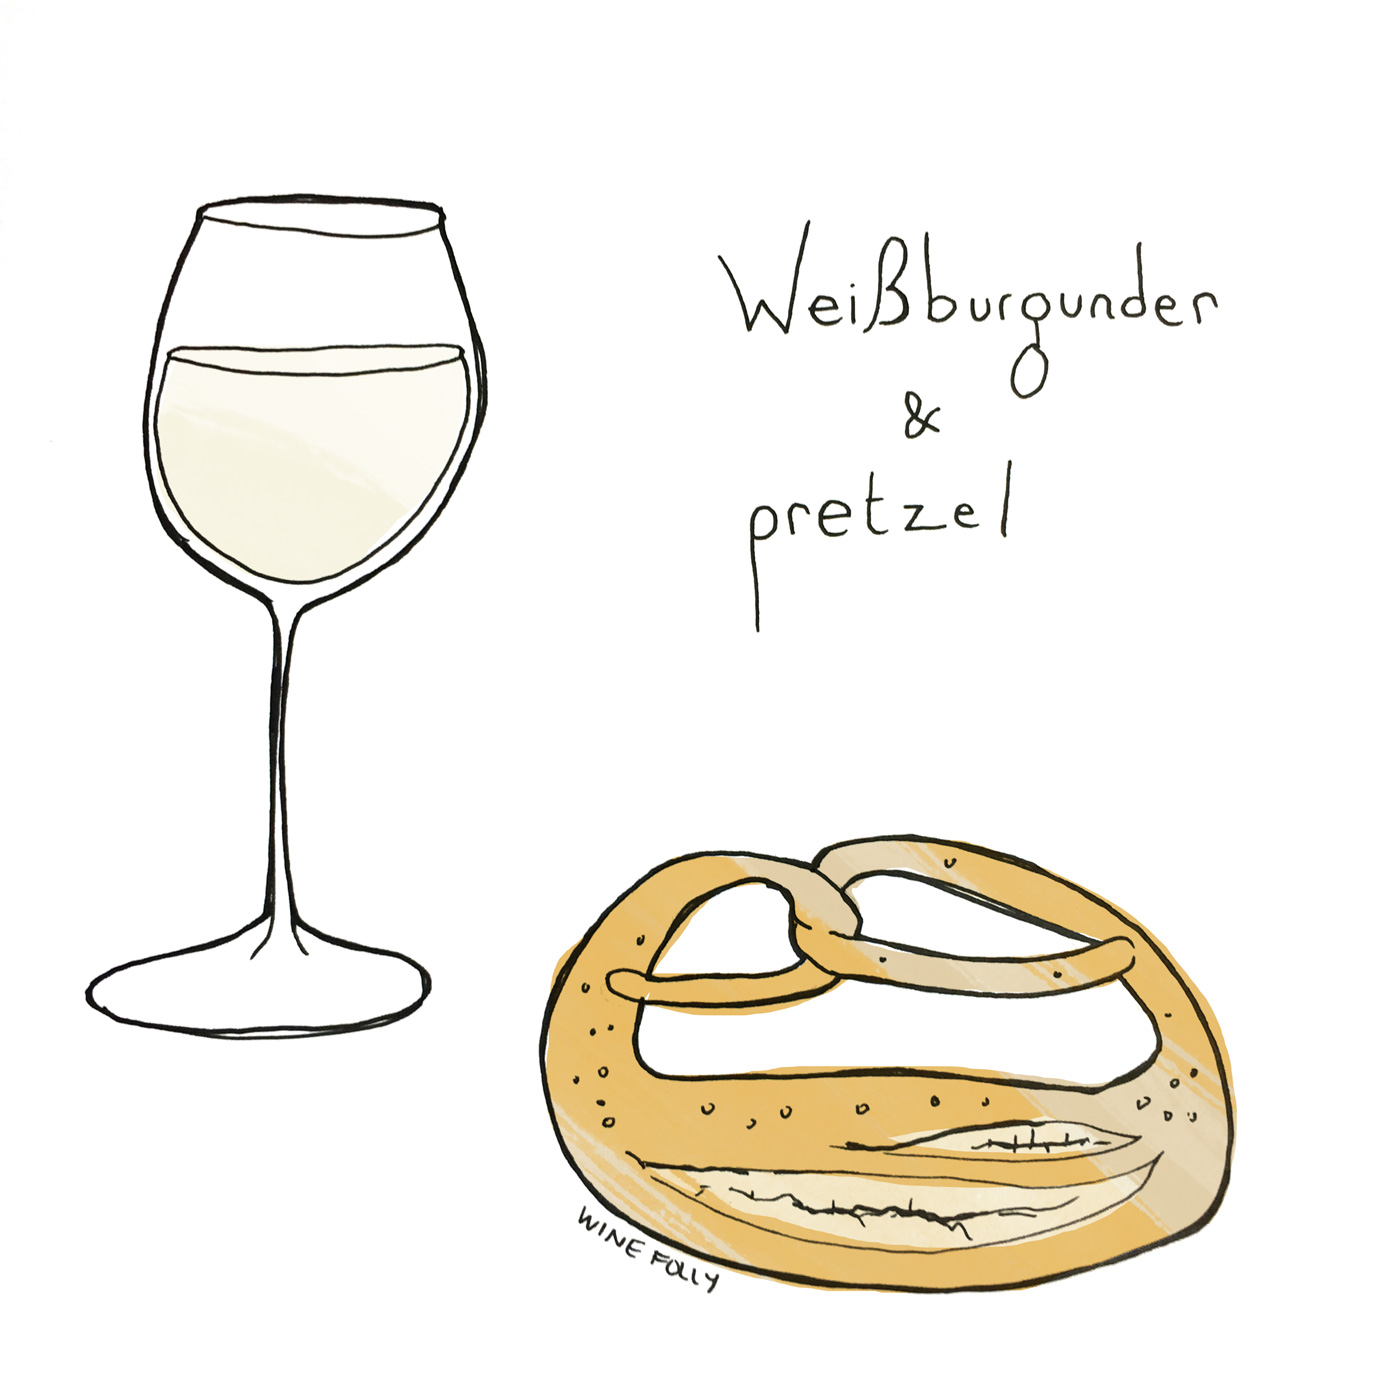 Weissburgunder (aka Pinot Blanc) German wine and food pairing